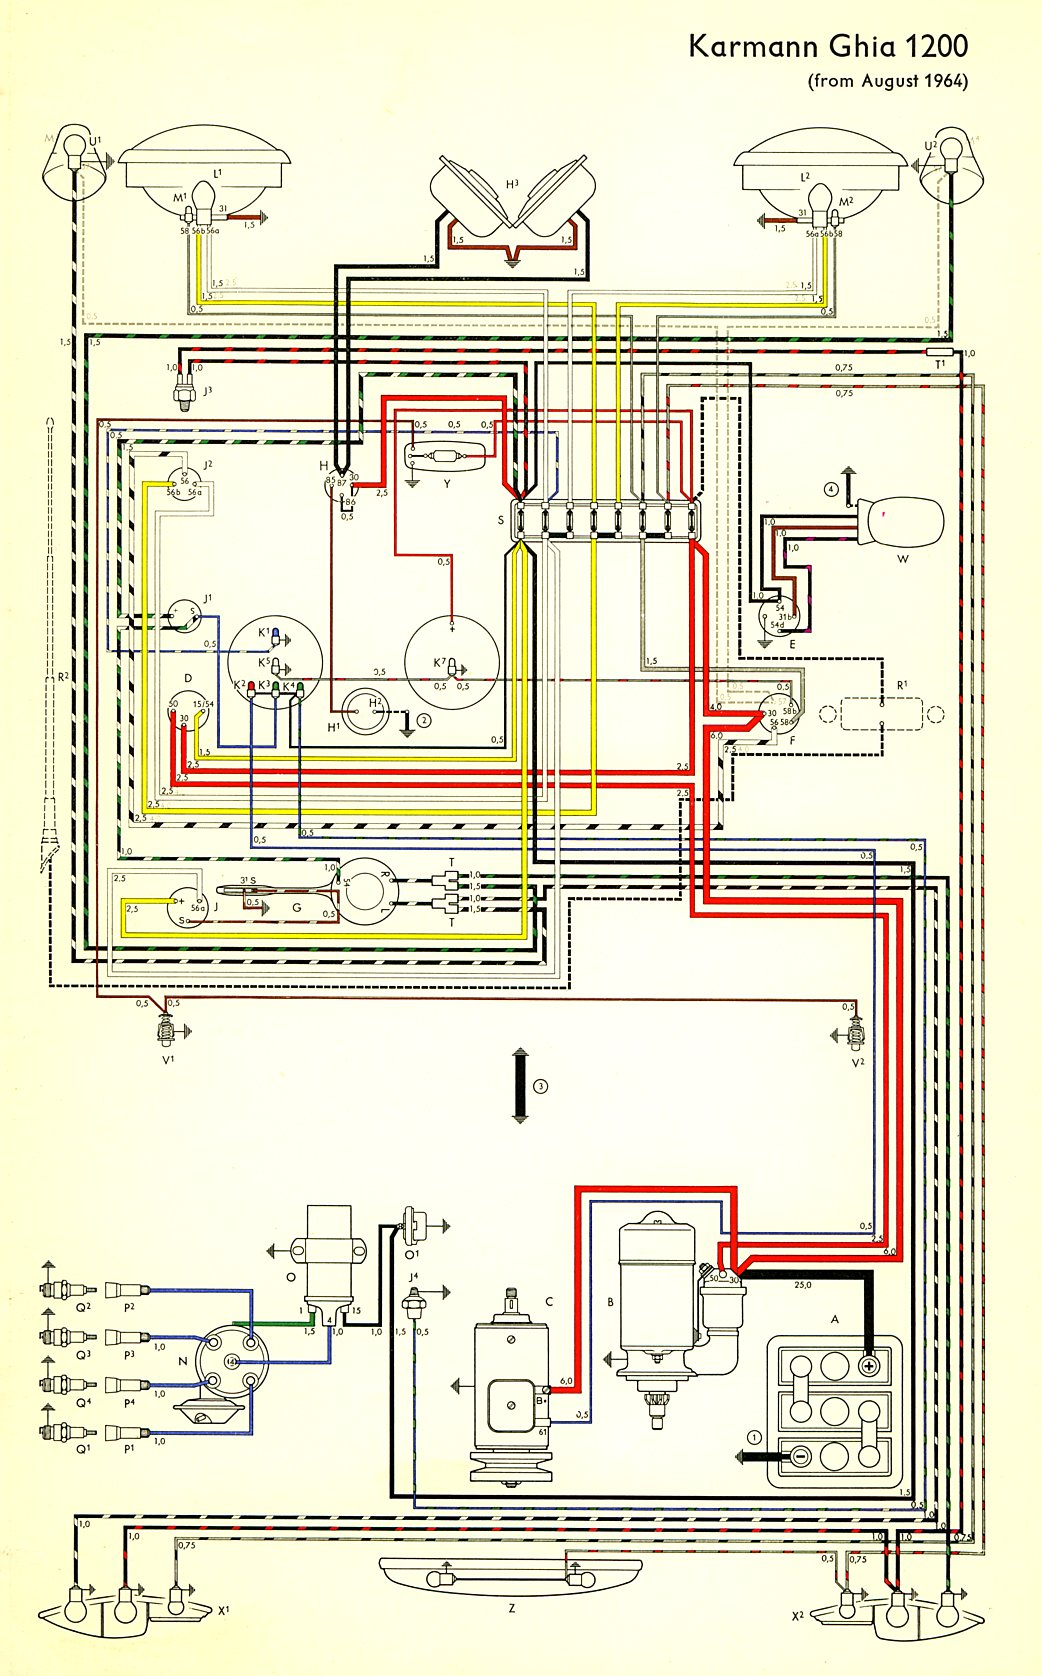 72 Karmann Ghia Wiring Diagram Free Picture Starting Know About 1968 Nova Schematic Thesamba Com Diagrams Rh